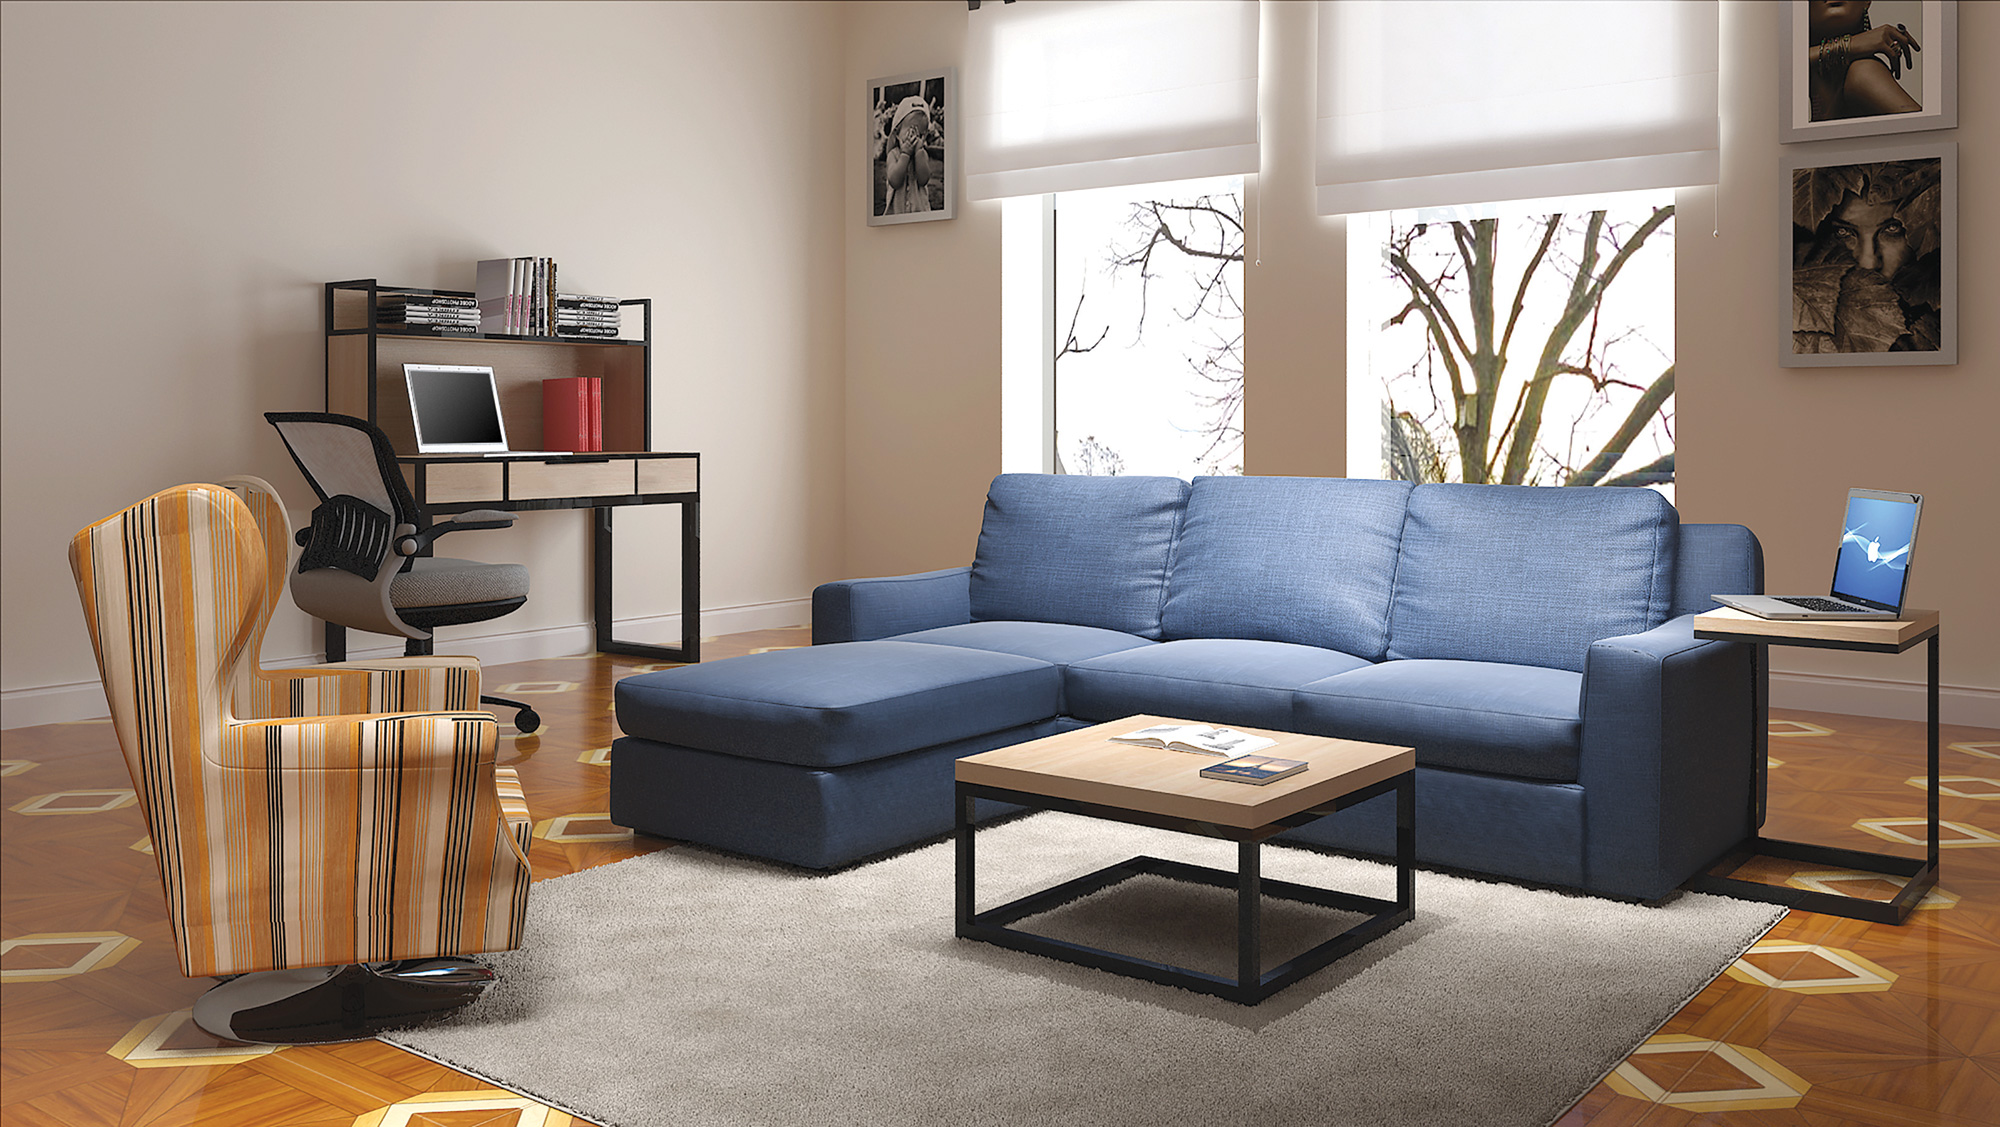 f3 student housing living room furniture